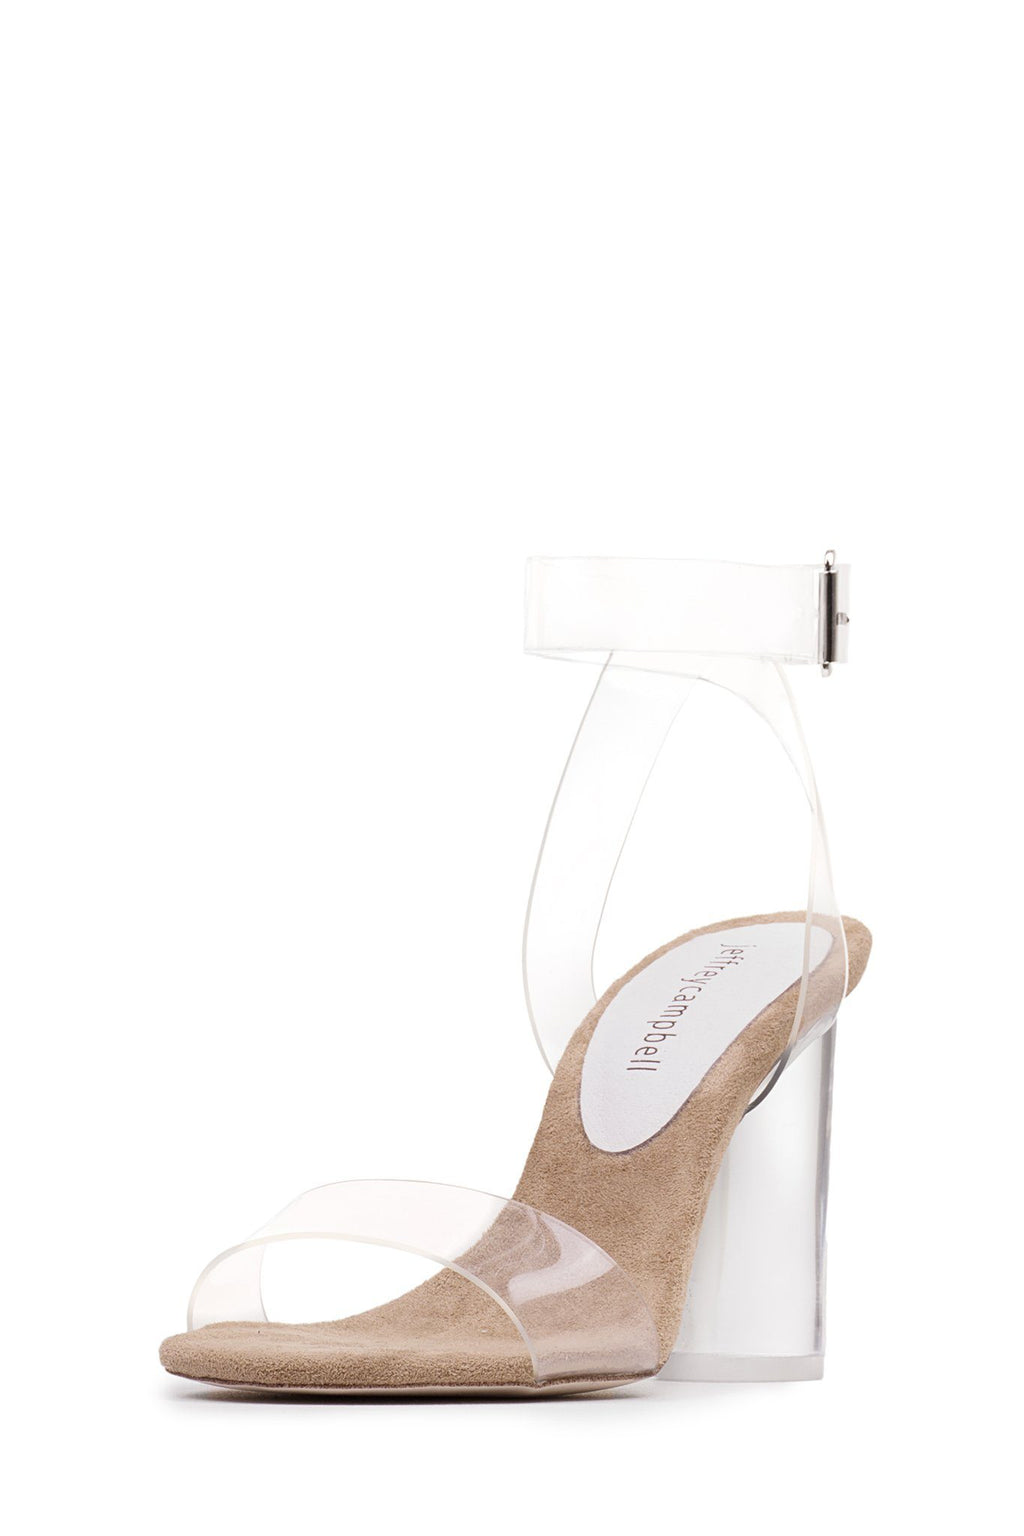 TWELVE - Jeffrey Campbell